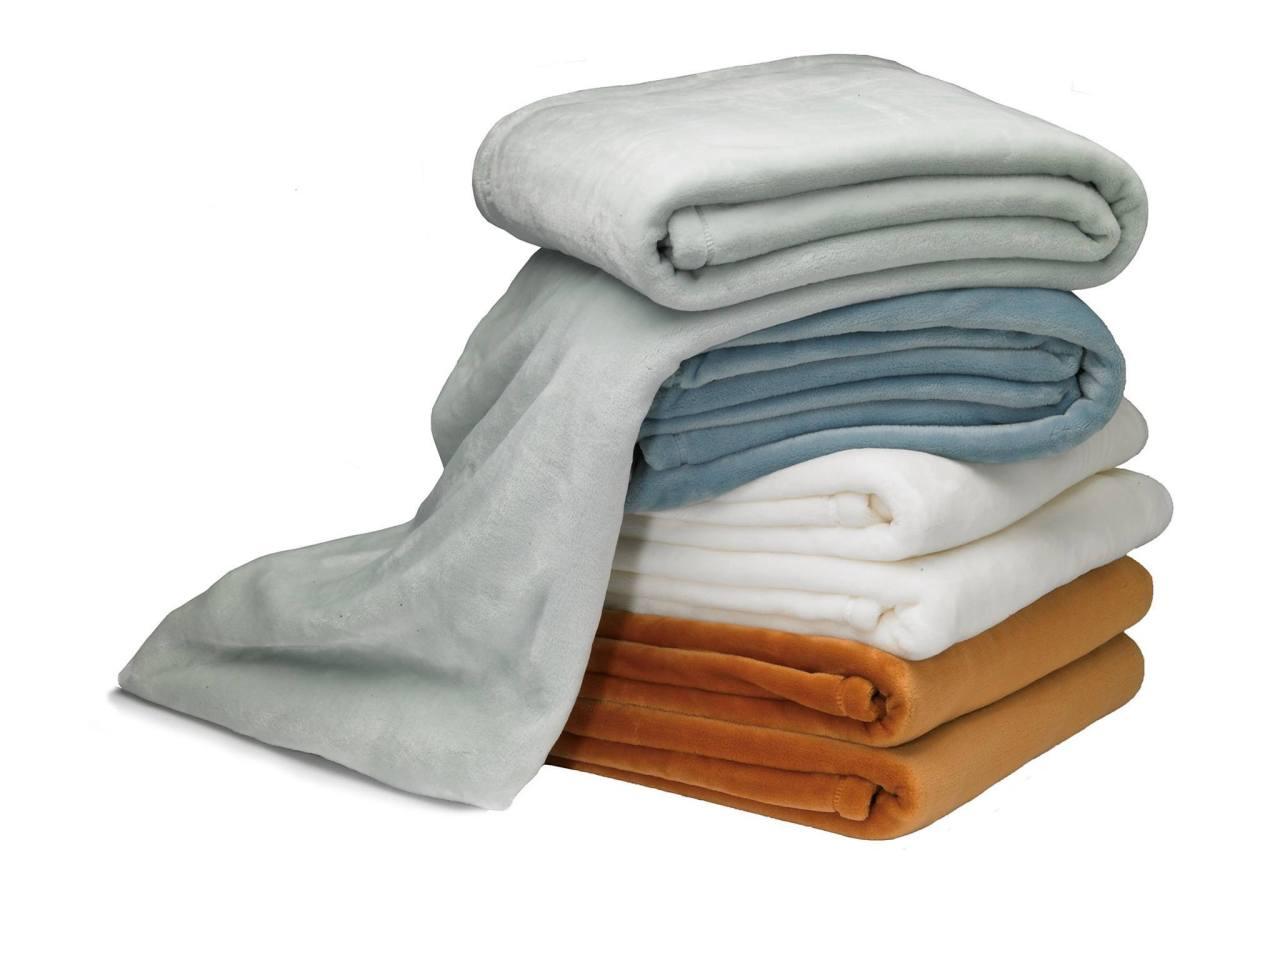 Ritzy Er Wear Be Sure You Are Ready Our Super Super Warm Blankets From American Blanket American Blanket Company Dorm Essential American Blanket Company Luster Loft Blankets American Blanket Company C houzz-03 American Blanket Company